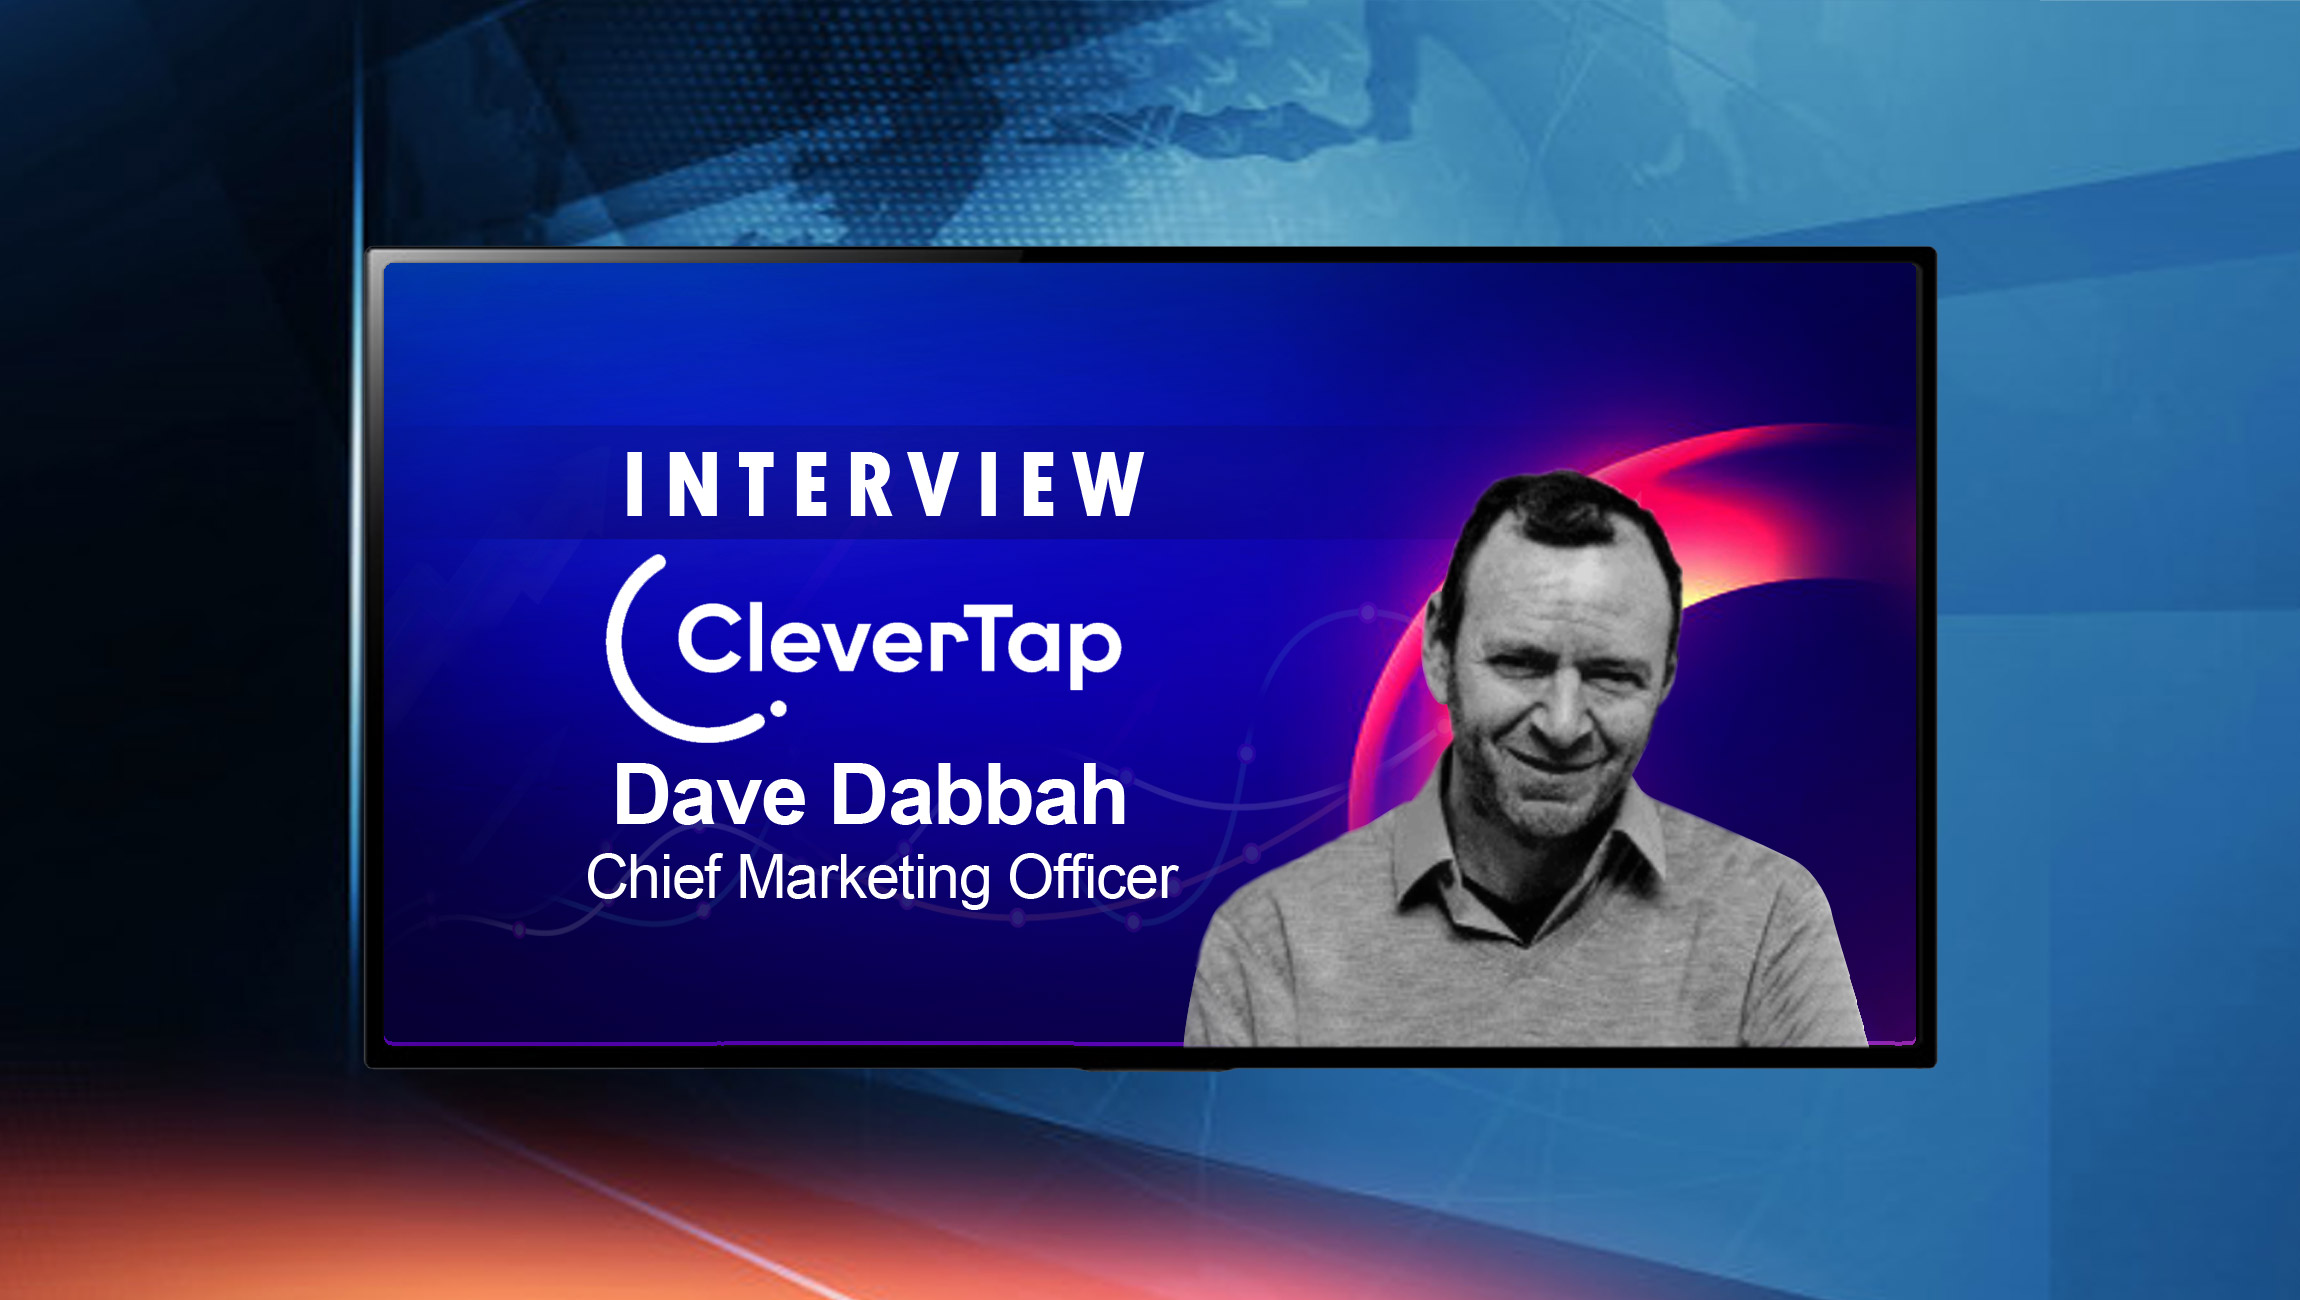 SalesTechStar Interview with Dave Dabbah, Chief Marketing Officer at CleverTap